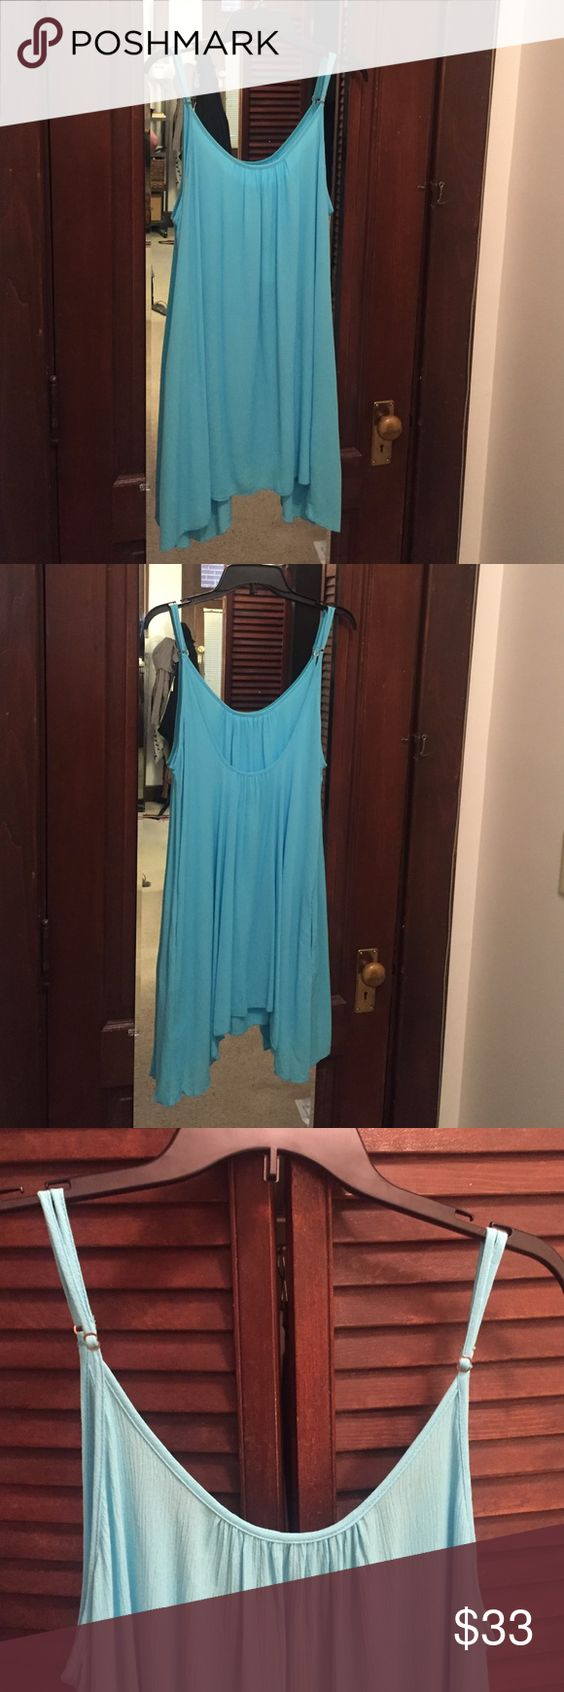 Elan Flare Dress Light blue, flowy summer dress. Has pockets and adjustable straps. NEVER BEEN WORN, NEW WITH TAGS. Elan Dresses Midi